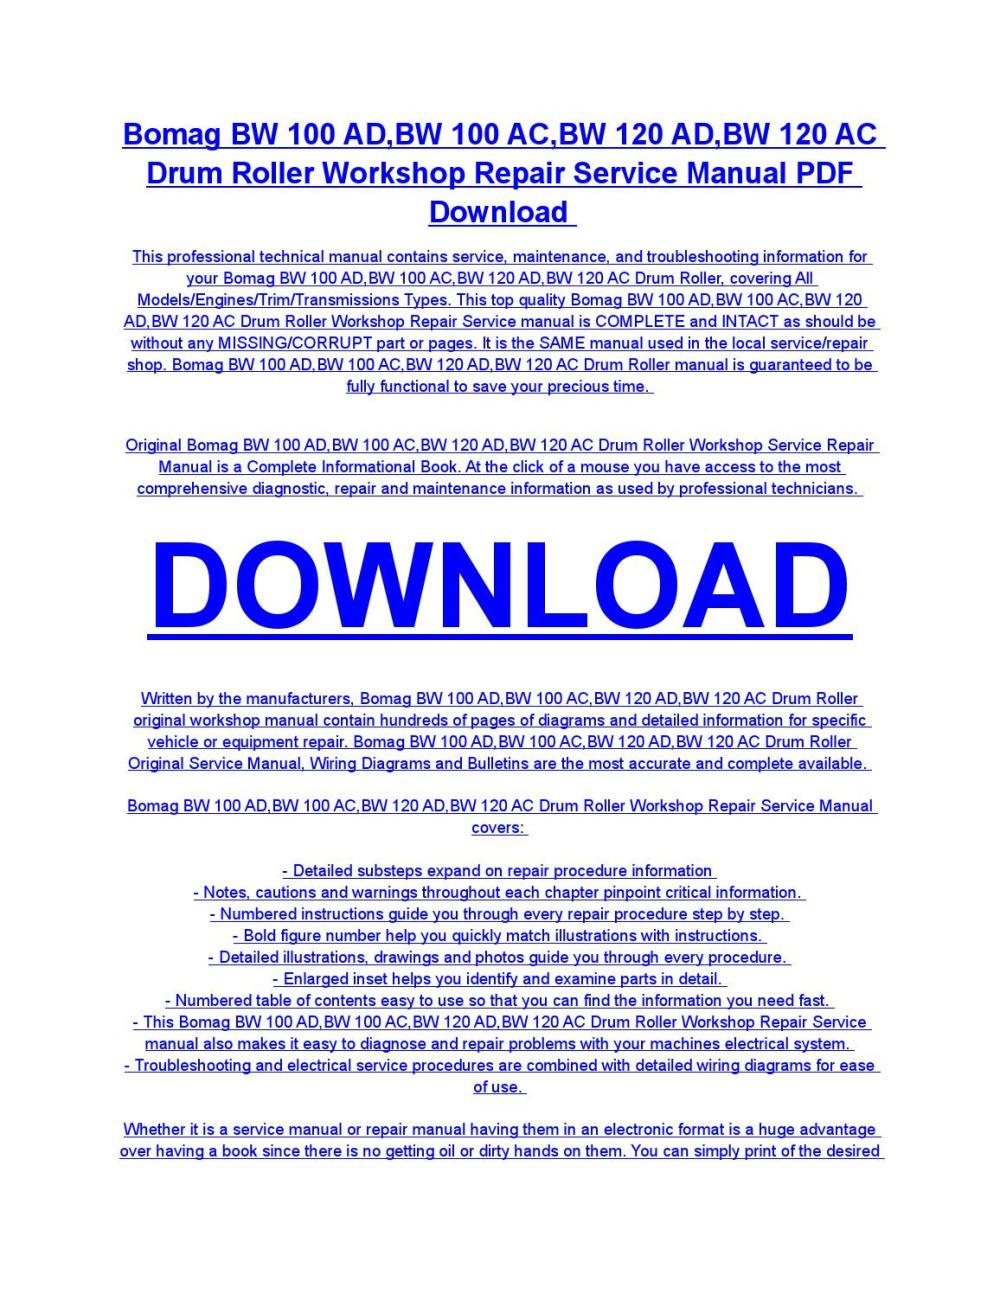 medium resolution of bomag bw 100 ad bw 100 ac bw 120 ad bw 120 ac drum roller service repair workshop manual download